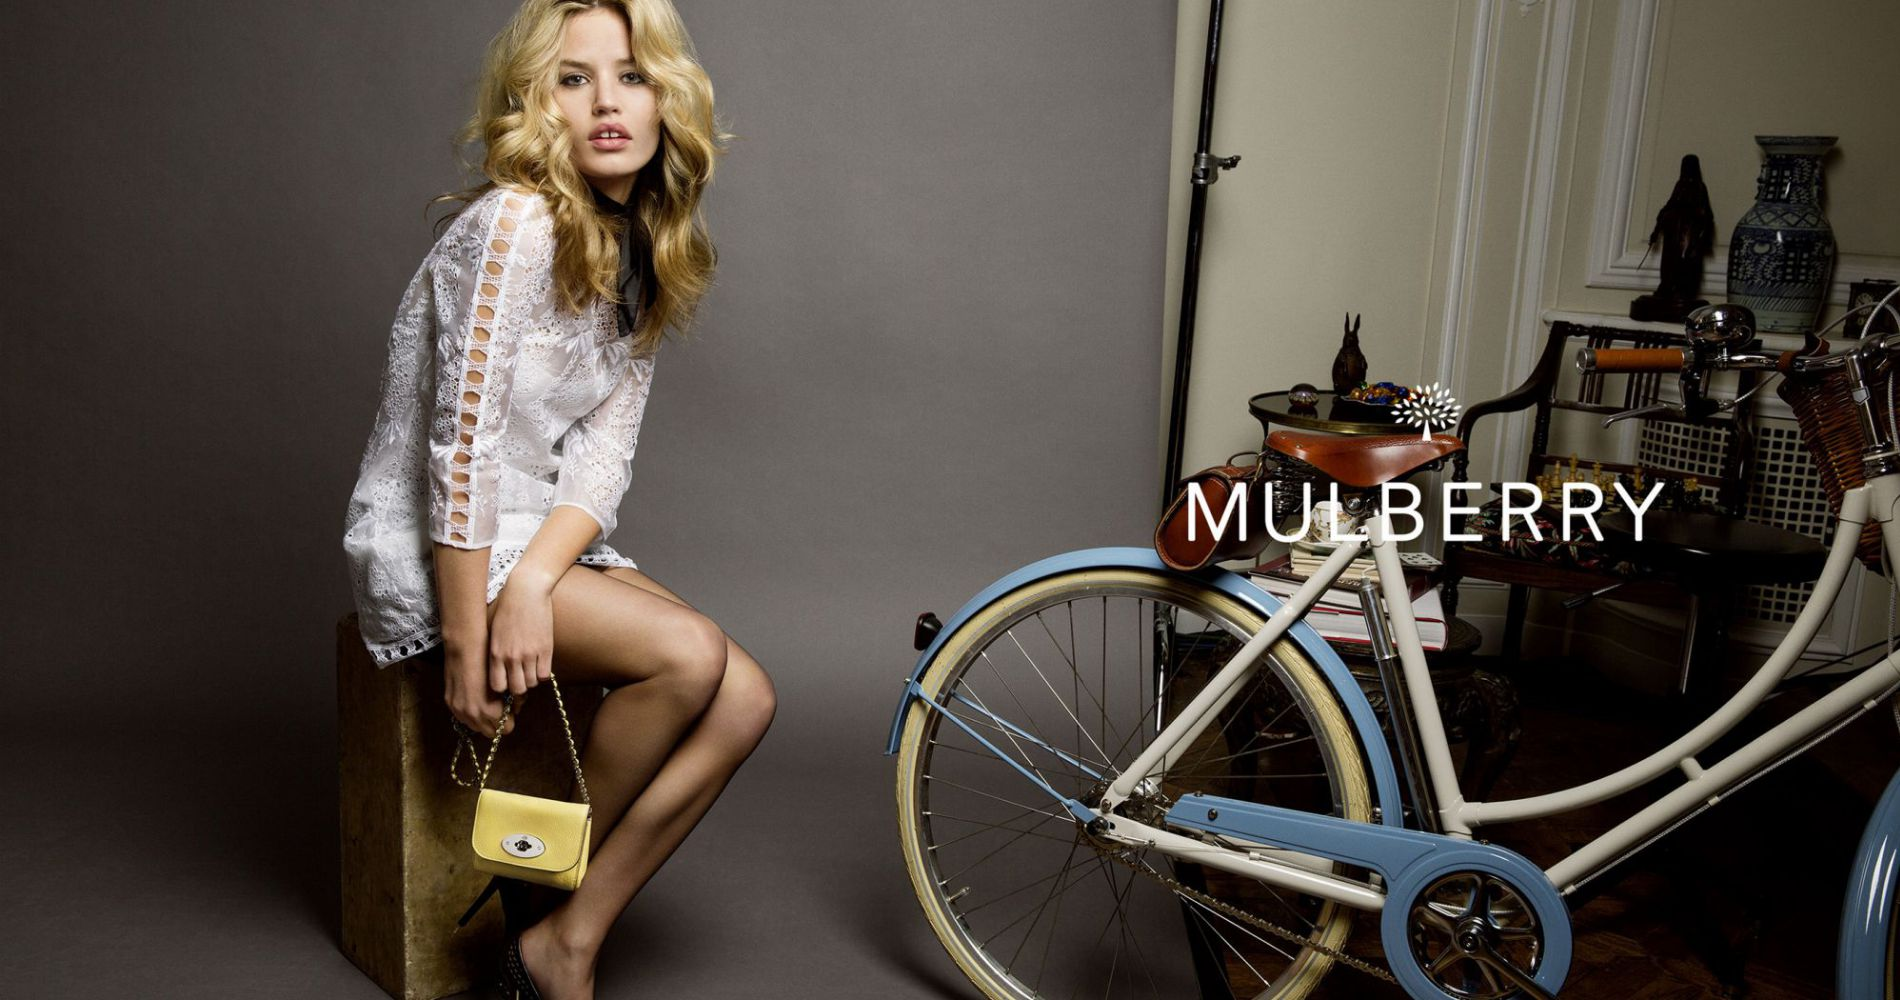 Georgia May Jagger devient le visage de Mulberry